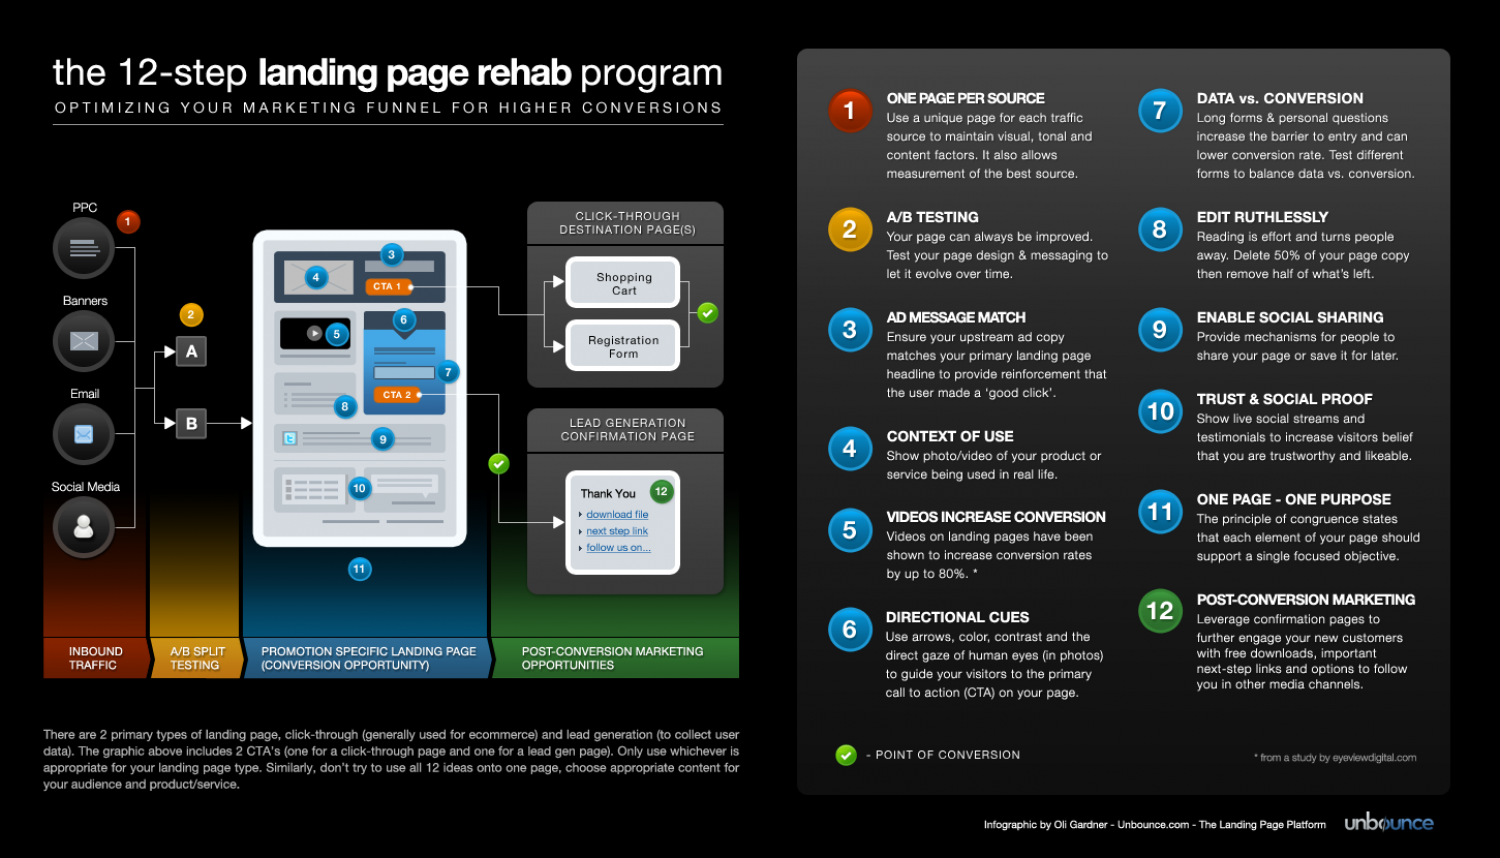 The 12-Step Landing Page Rehab Program Infographic